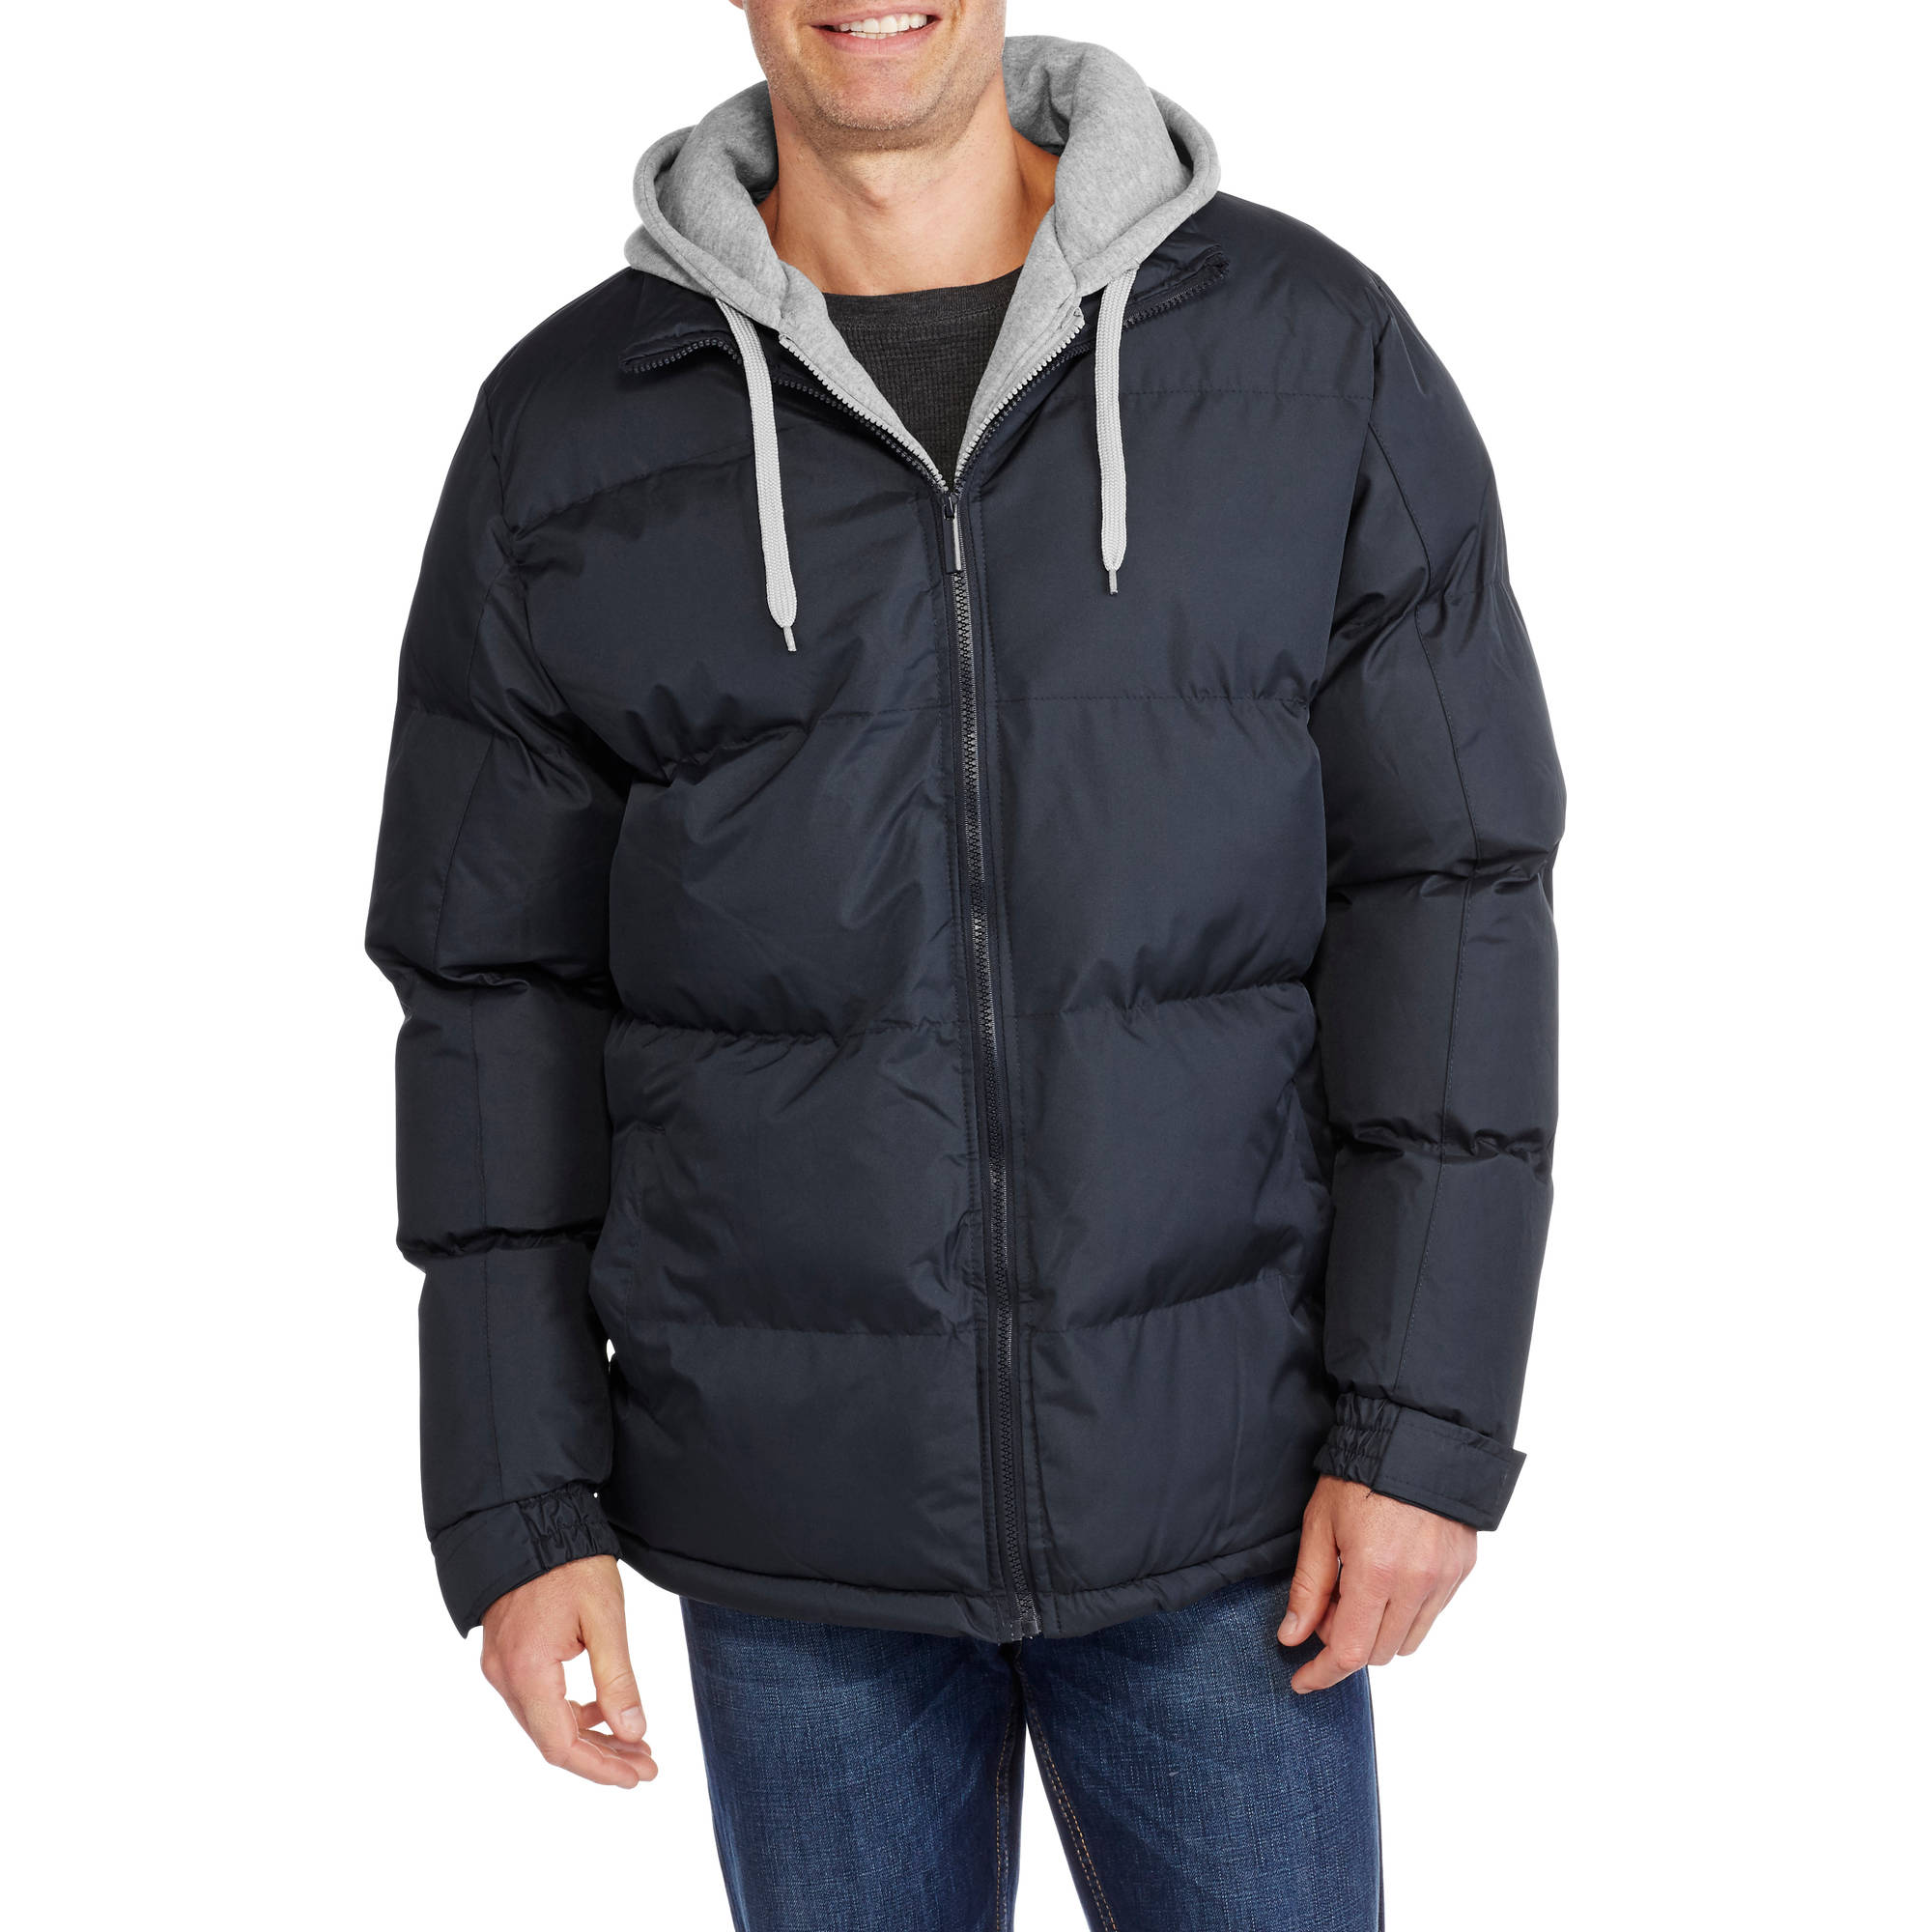 Men's Hooded Bubble Jacket with Fleece Chest Warmer